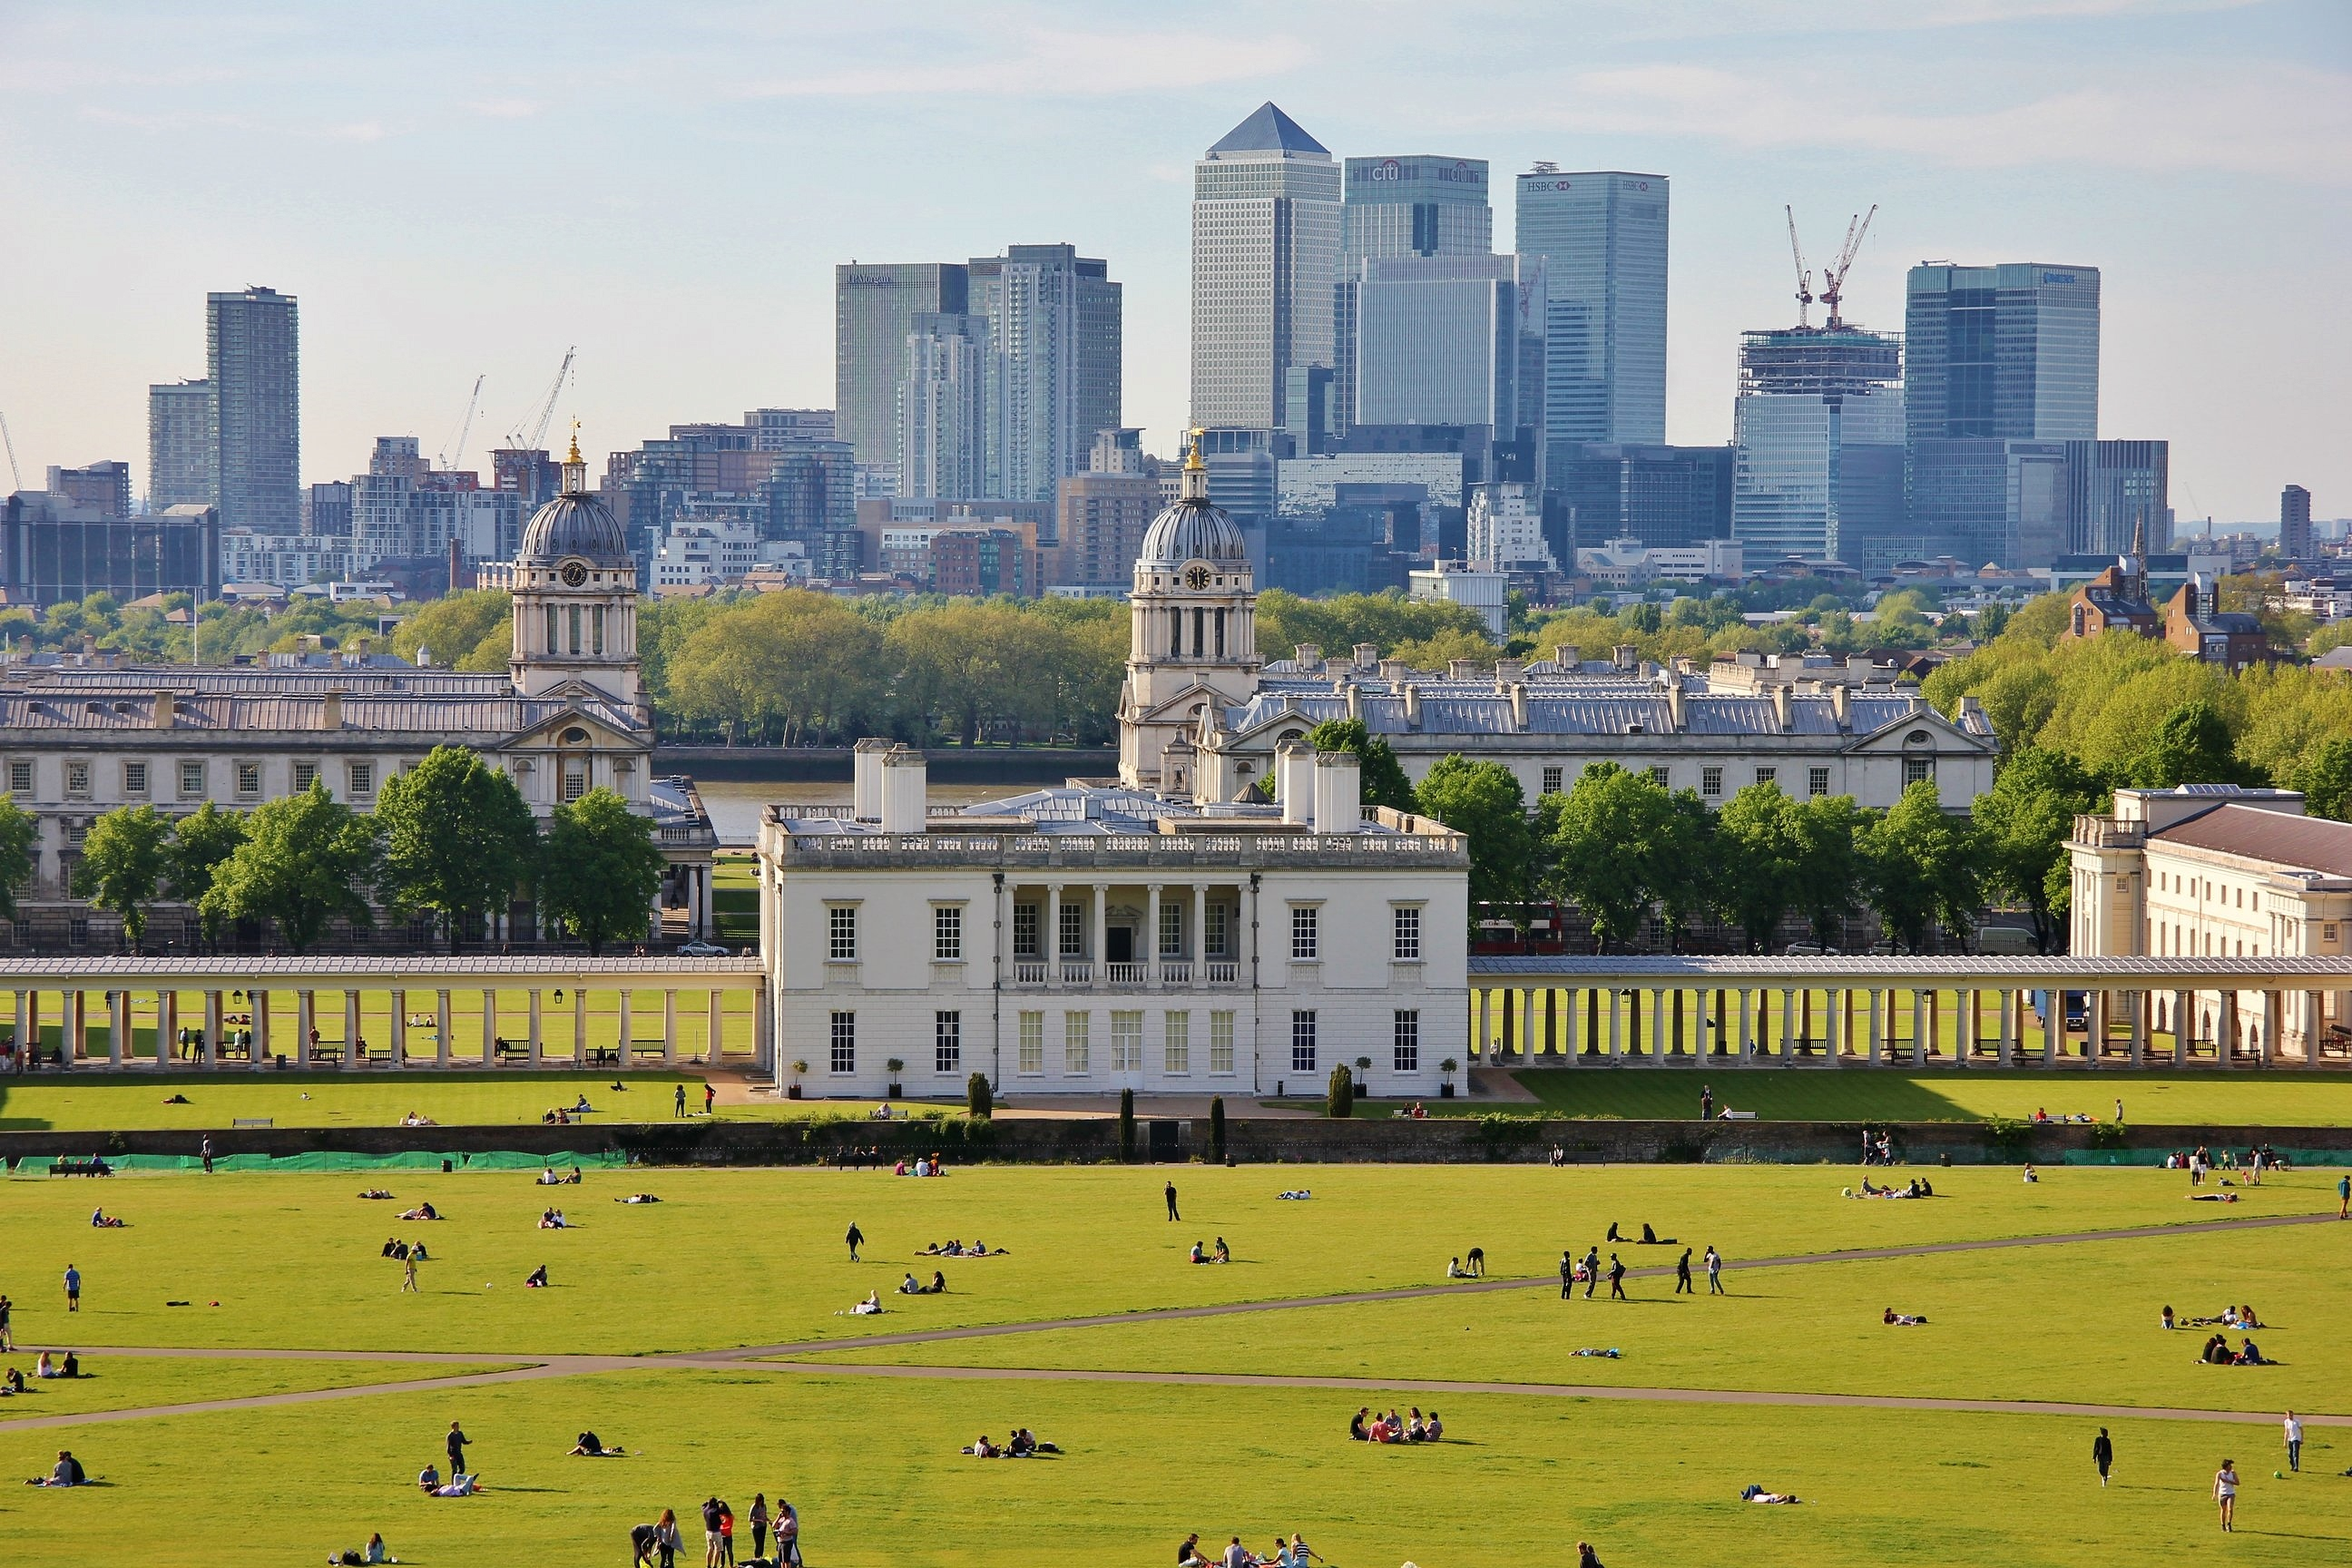 Panoramic view of London from Greenwich Park